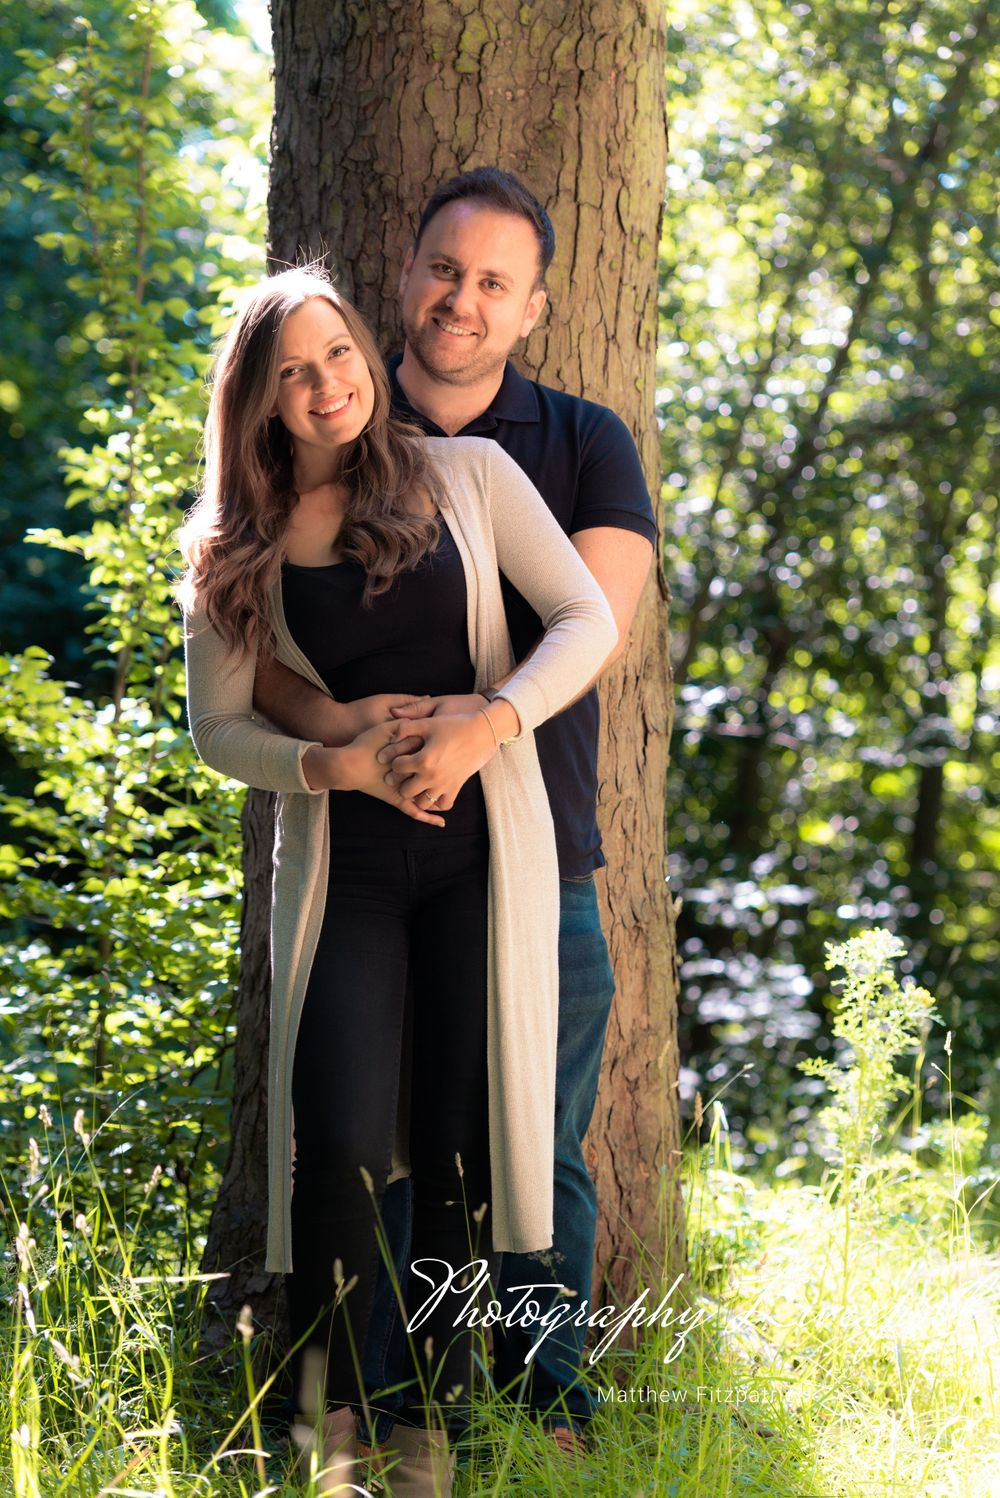 Naturally posed engagement photography at Sefton Park by Photography Liverpool Wedding Photographer